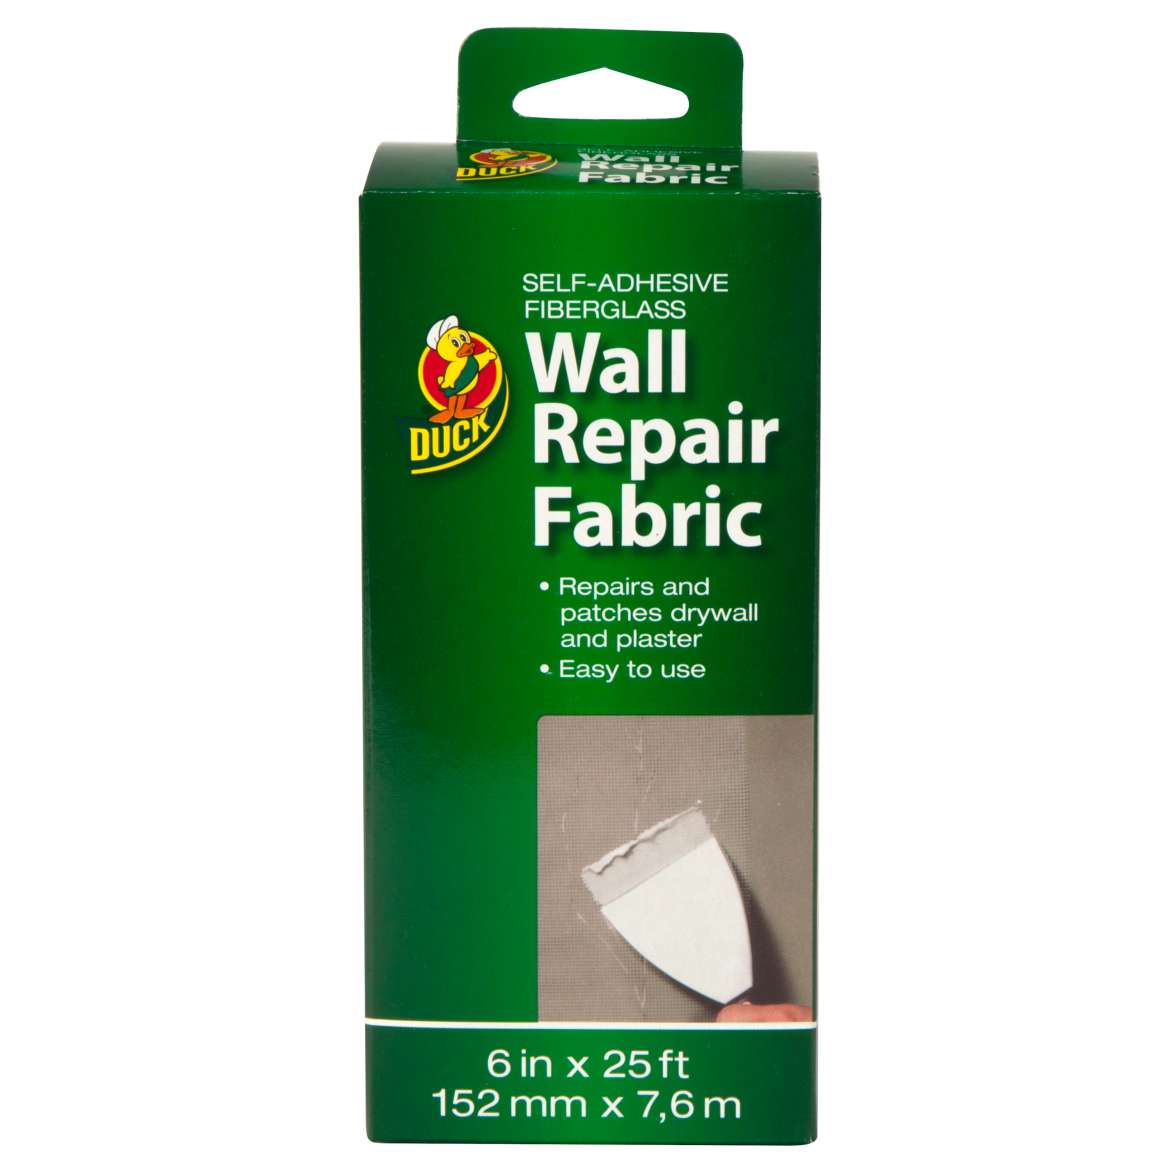 Duck® Brand Wall Repair Fabric, 6 in. x 25 ft. Image